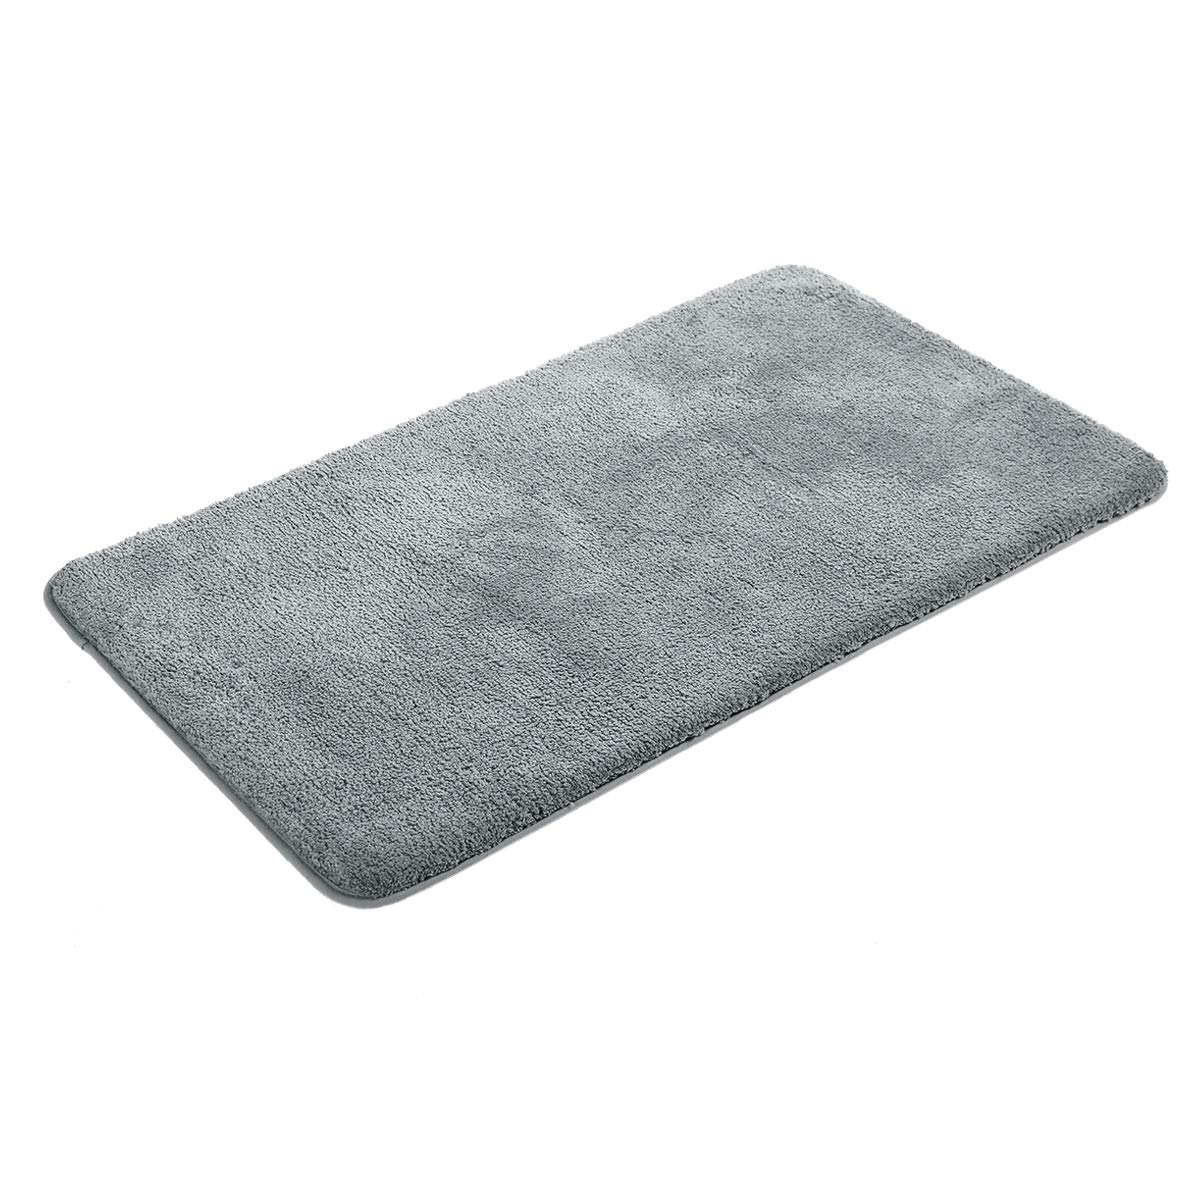 MAYSHINE Bath mats for Bathroom rugs(24X39 inch),5 Sizes,Extra Soft, Absorbent, Densely woven Shaggy D8 Microfiber,Machine-Washable, Perfect for Doormats,Tub, Shower- Gray